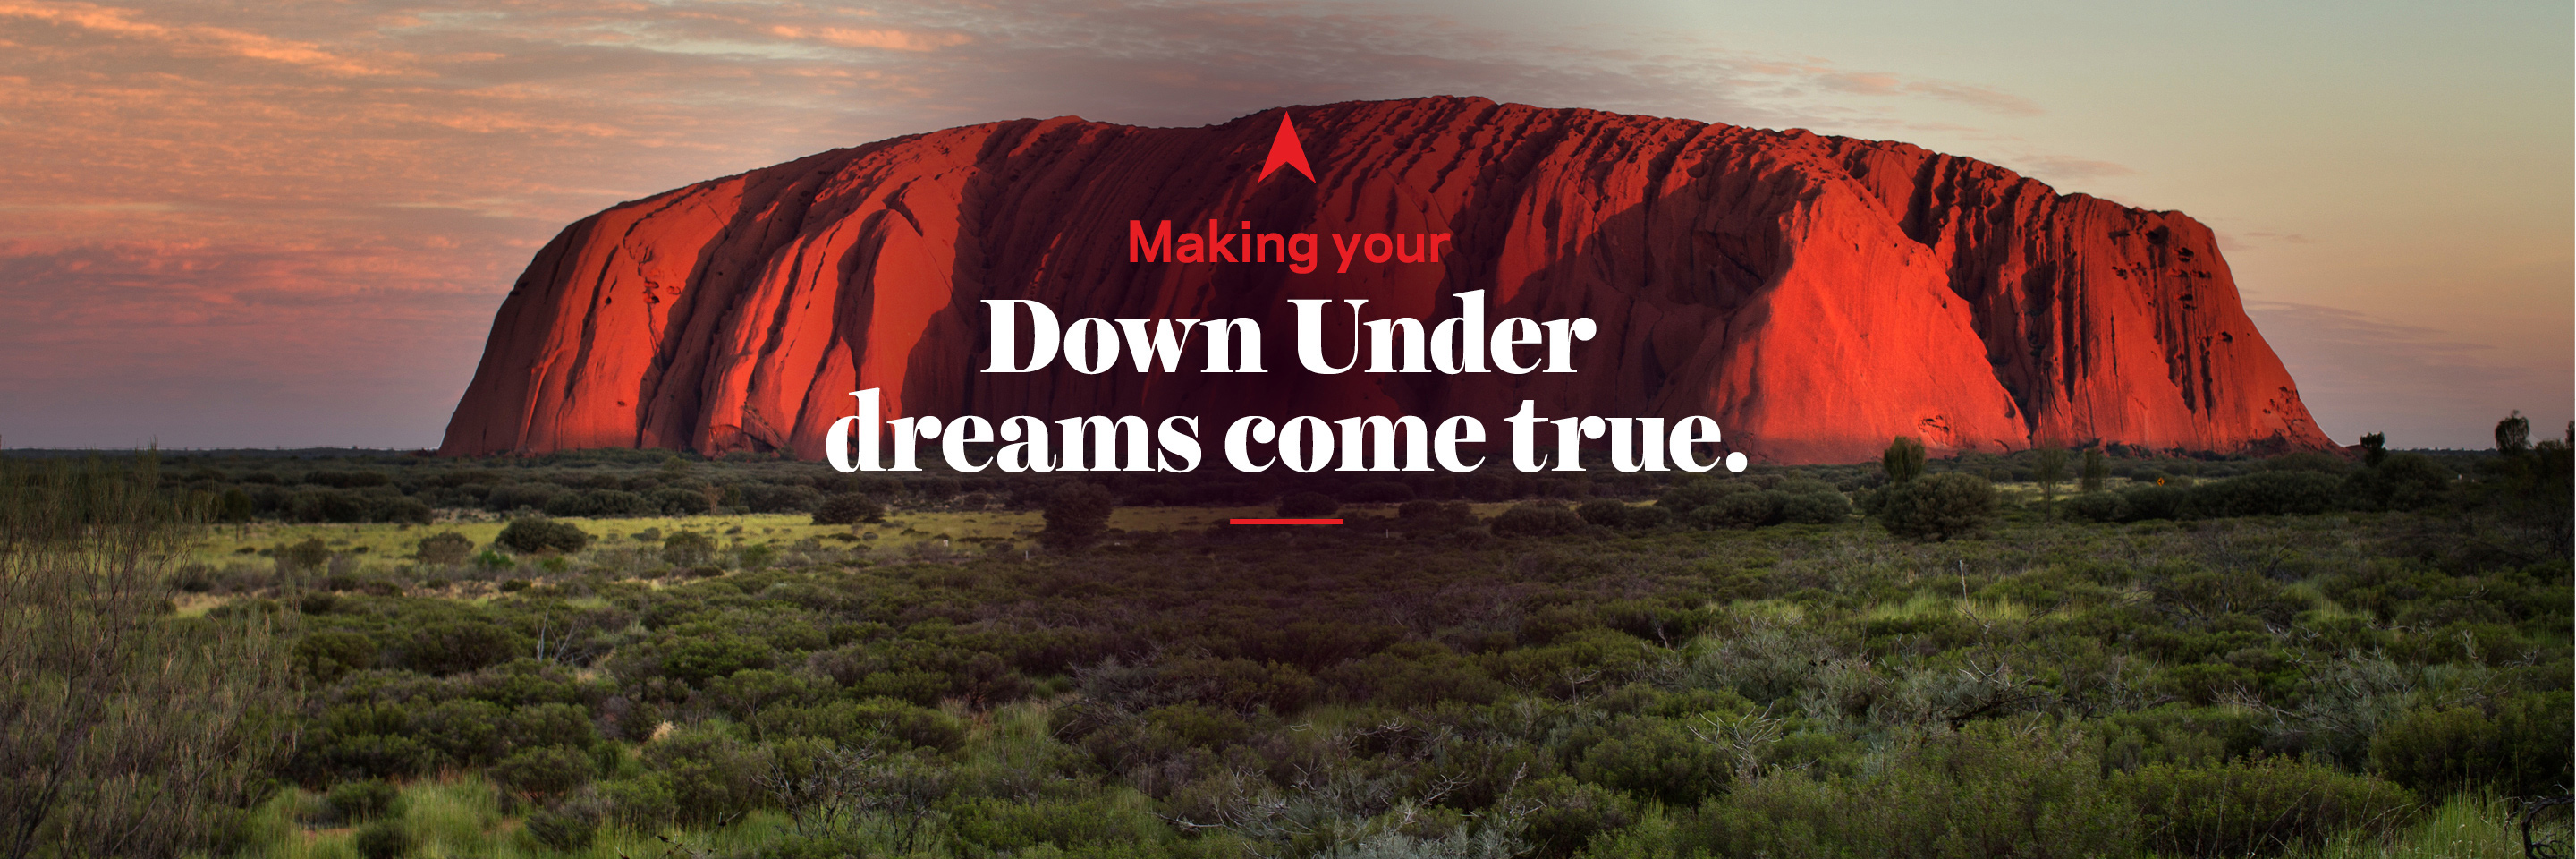 Making your Down Under dreams come true